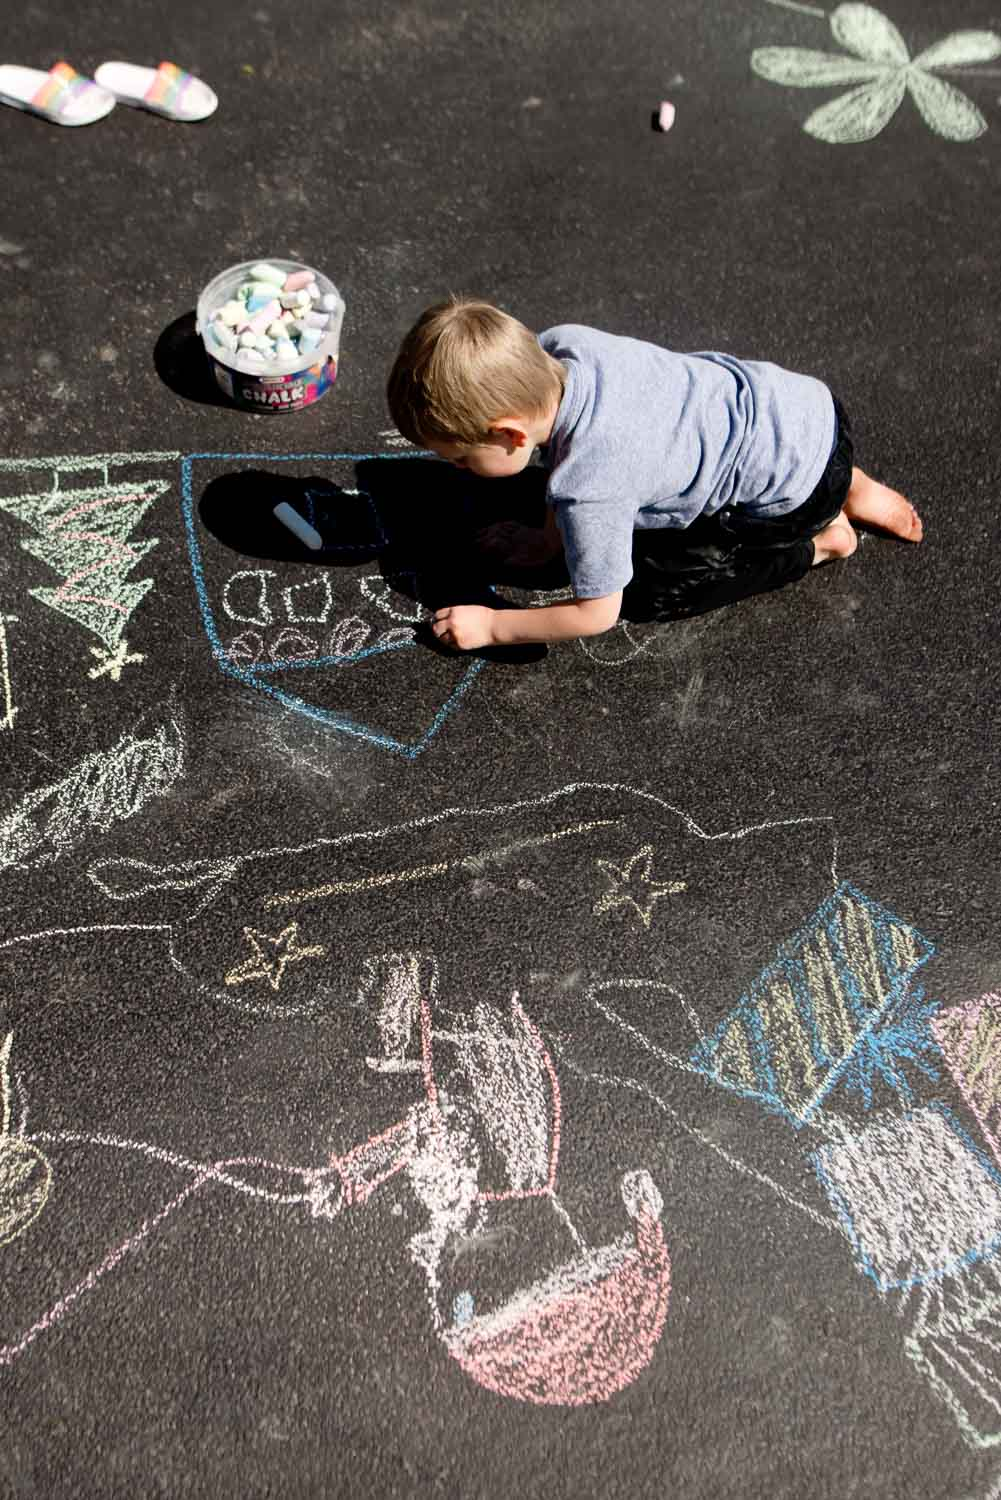 Shadow tracing for kids turns into big art project